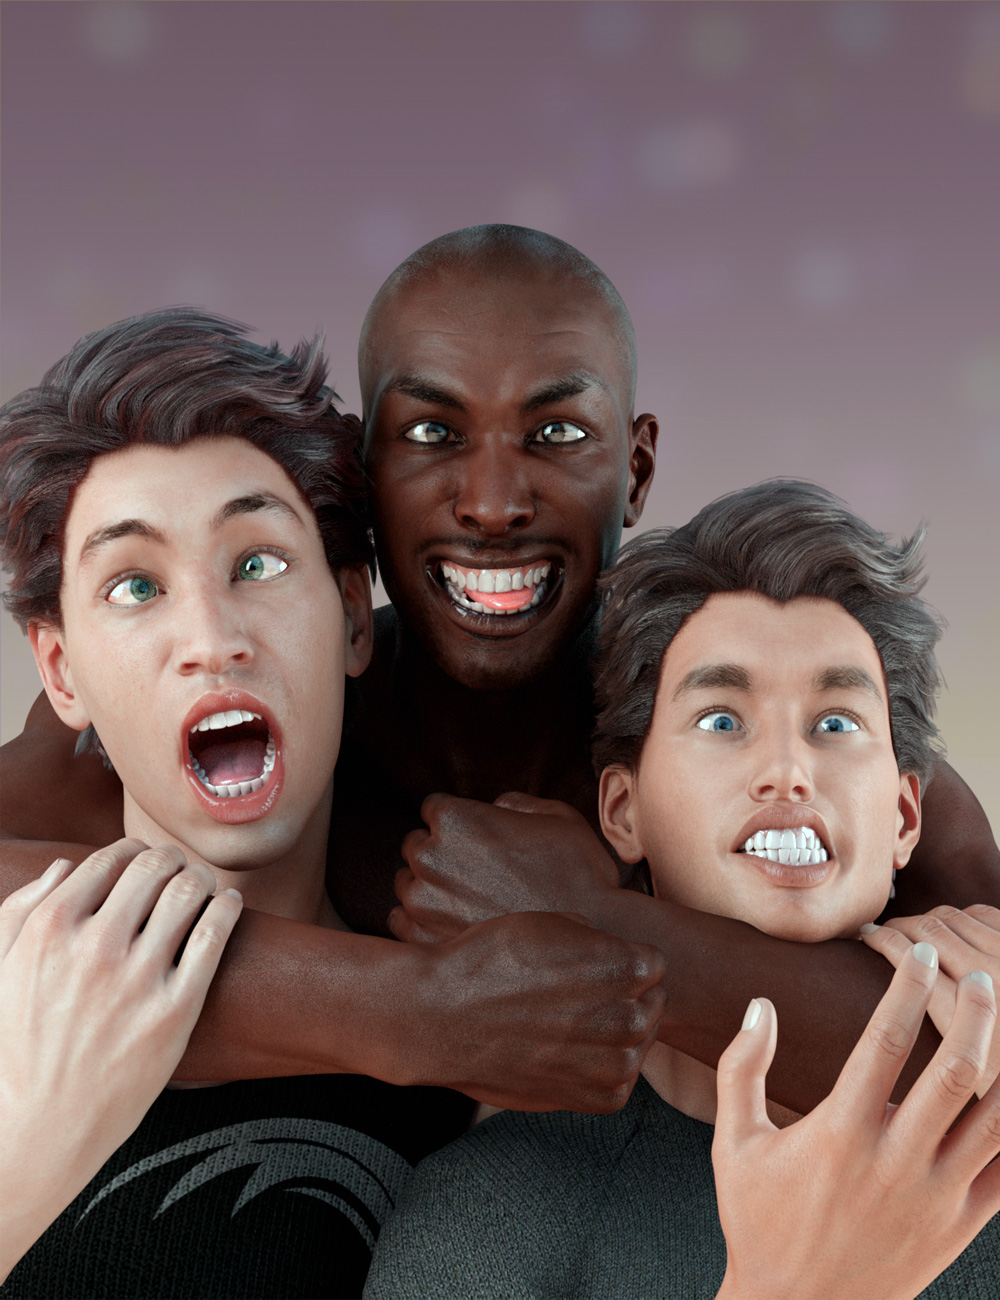 Grimaces - Dialable & One-Click Expressions for Genesis 3 Male by: Leo Lee, 3D Models by Daz 3D